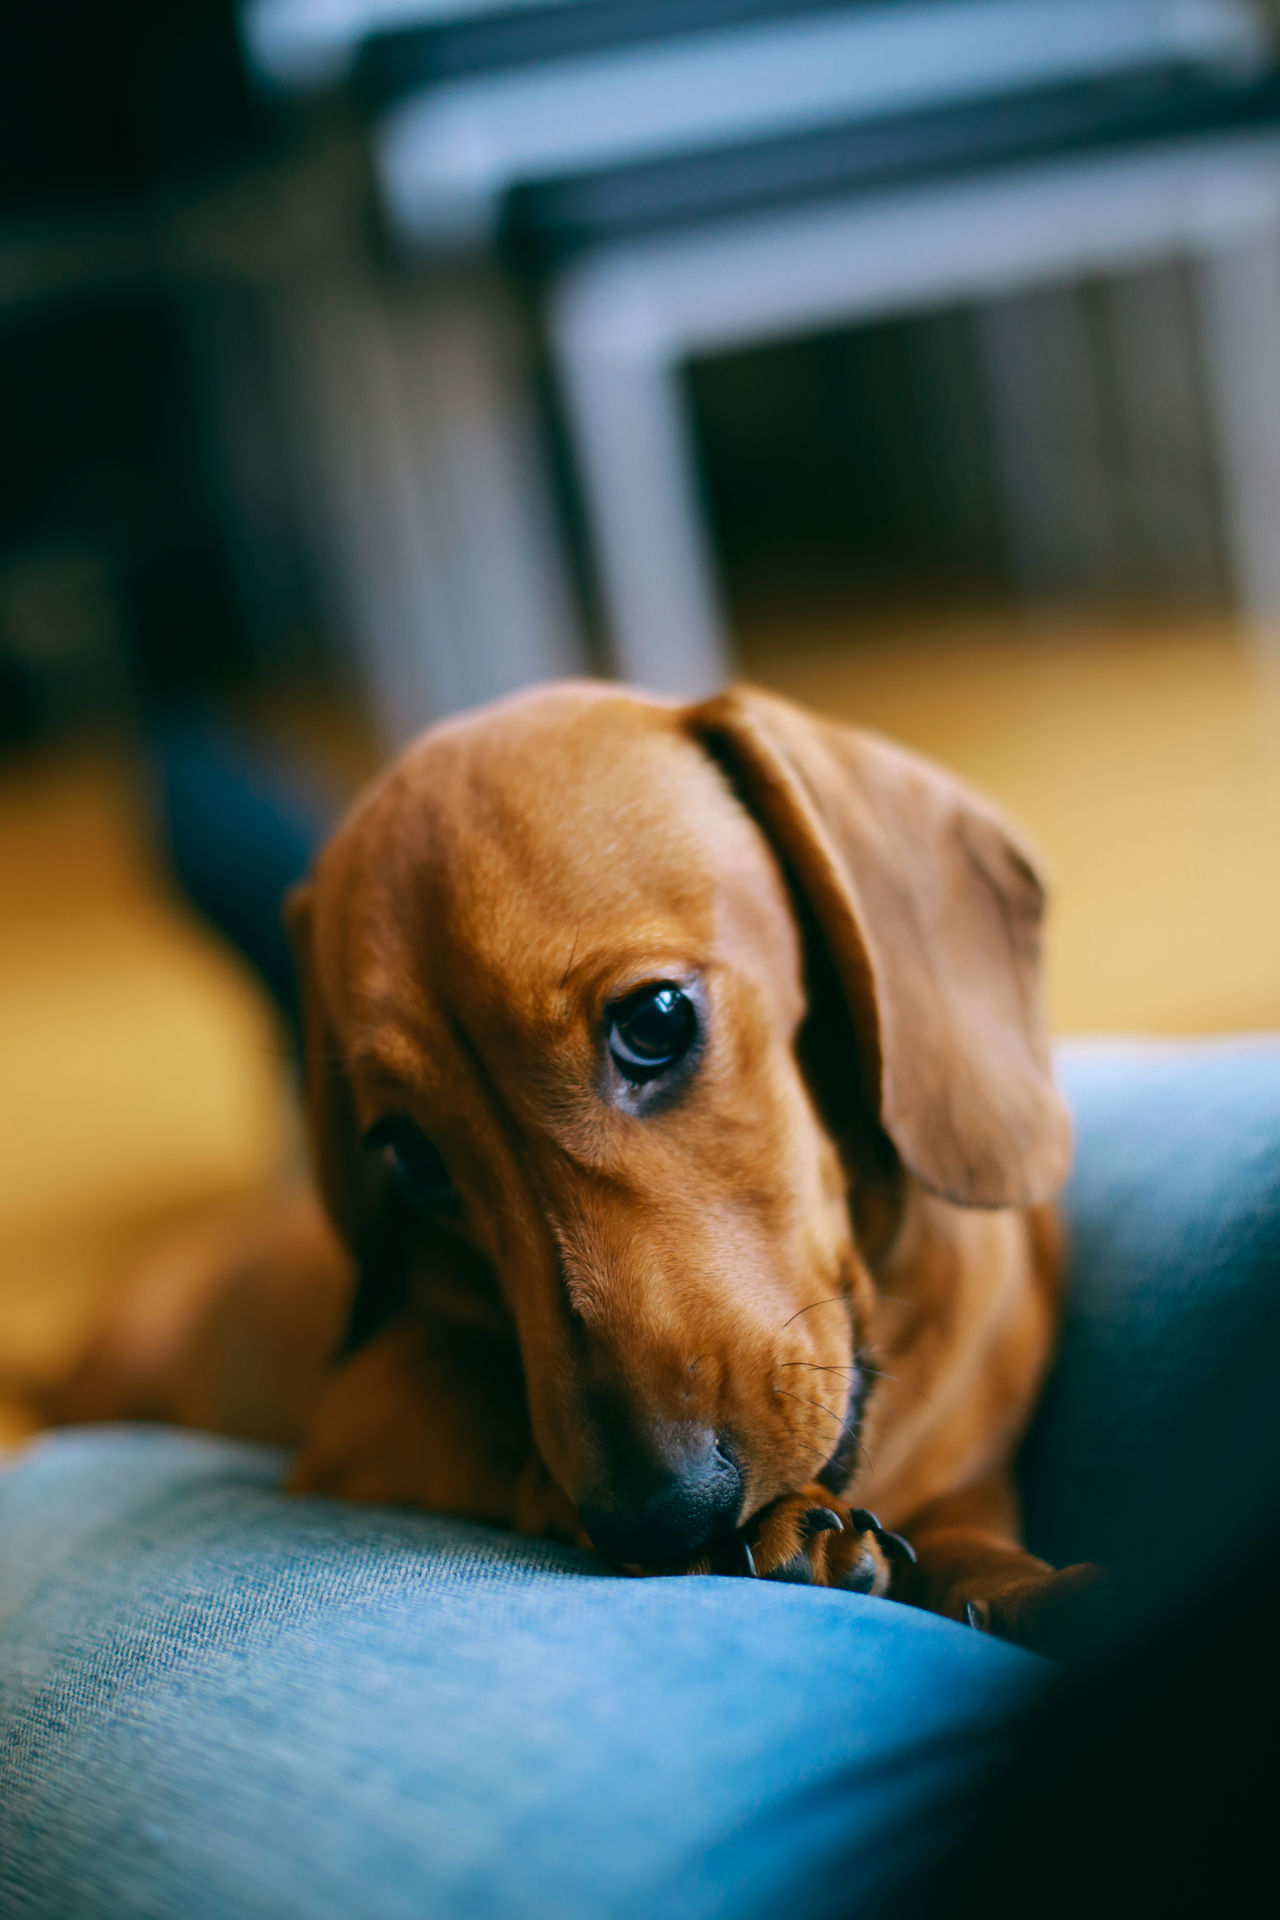 Hey Animal Themes At Home Bonding Close-up Dachshund Day Dog Domestic Animals Home Interior Indoors  Licking Mammal No People One Animal Owner Paw Pet Puppy Puppy Love Sitting Together